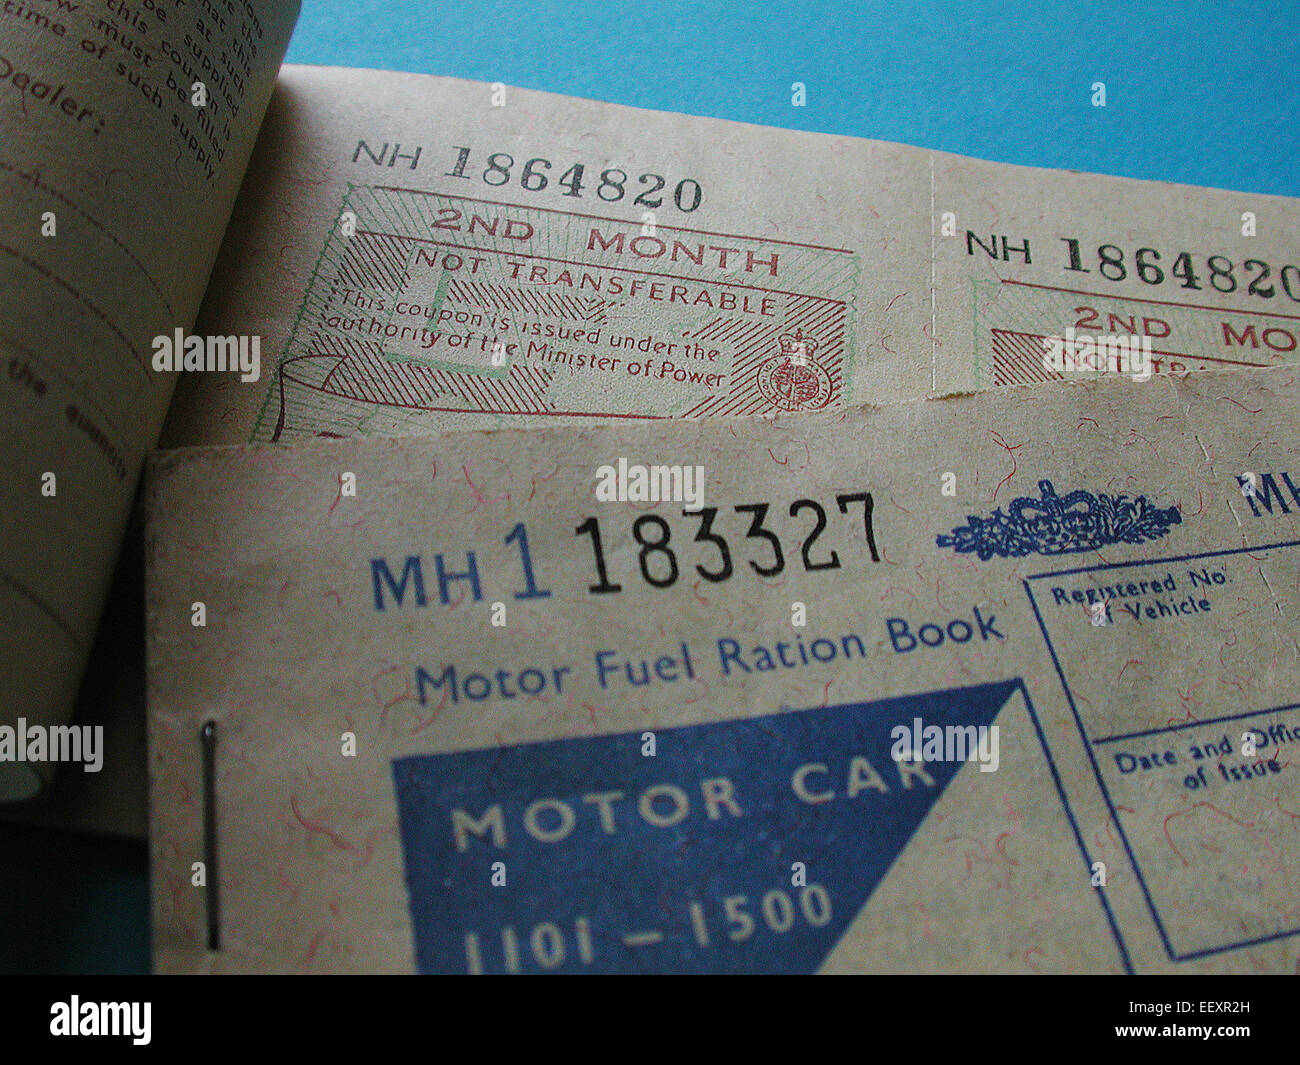 Fuel ration book 1973 oil crisis Petrol rationing books for motor car Stock Photo